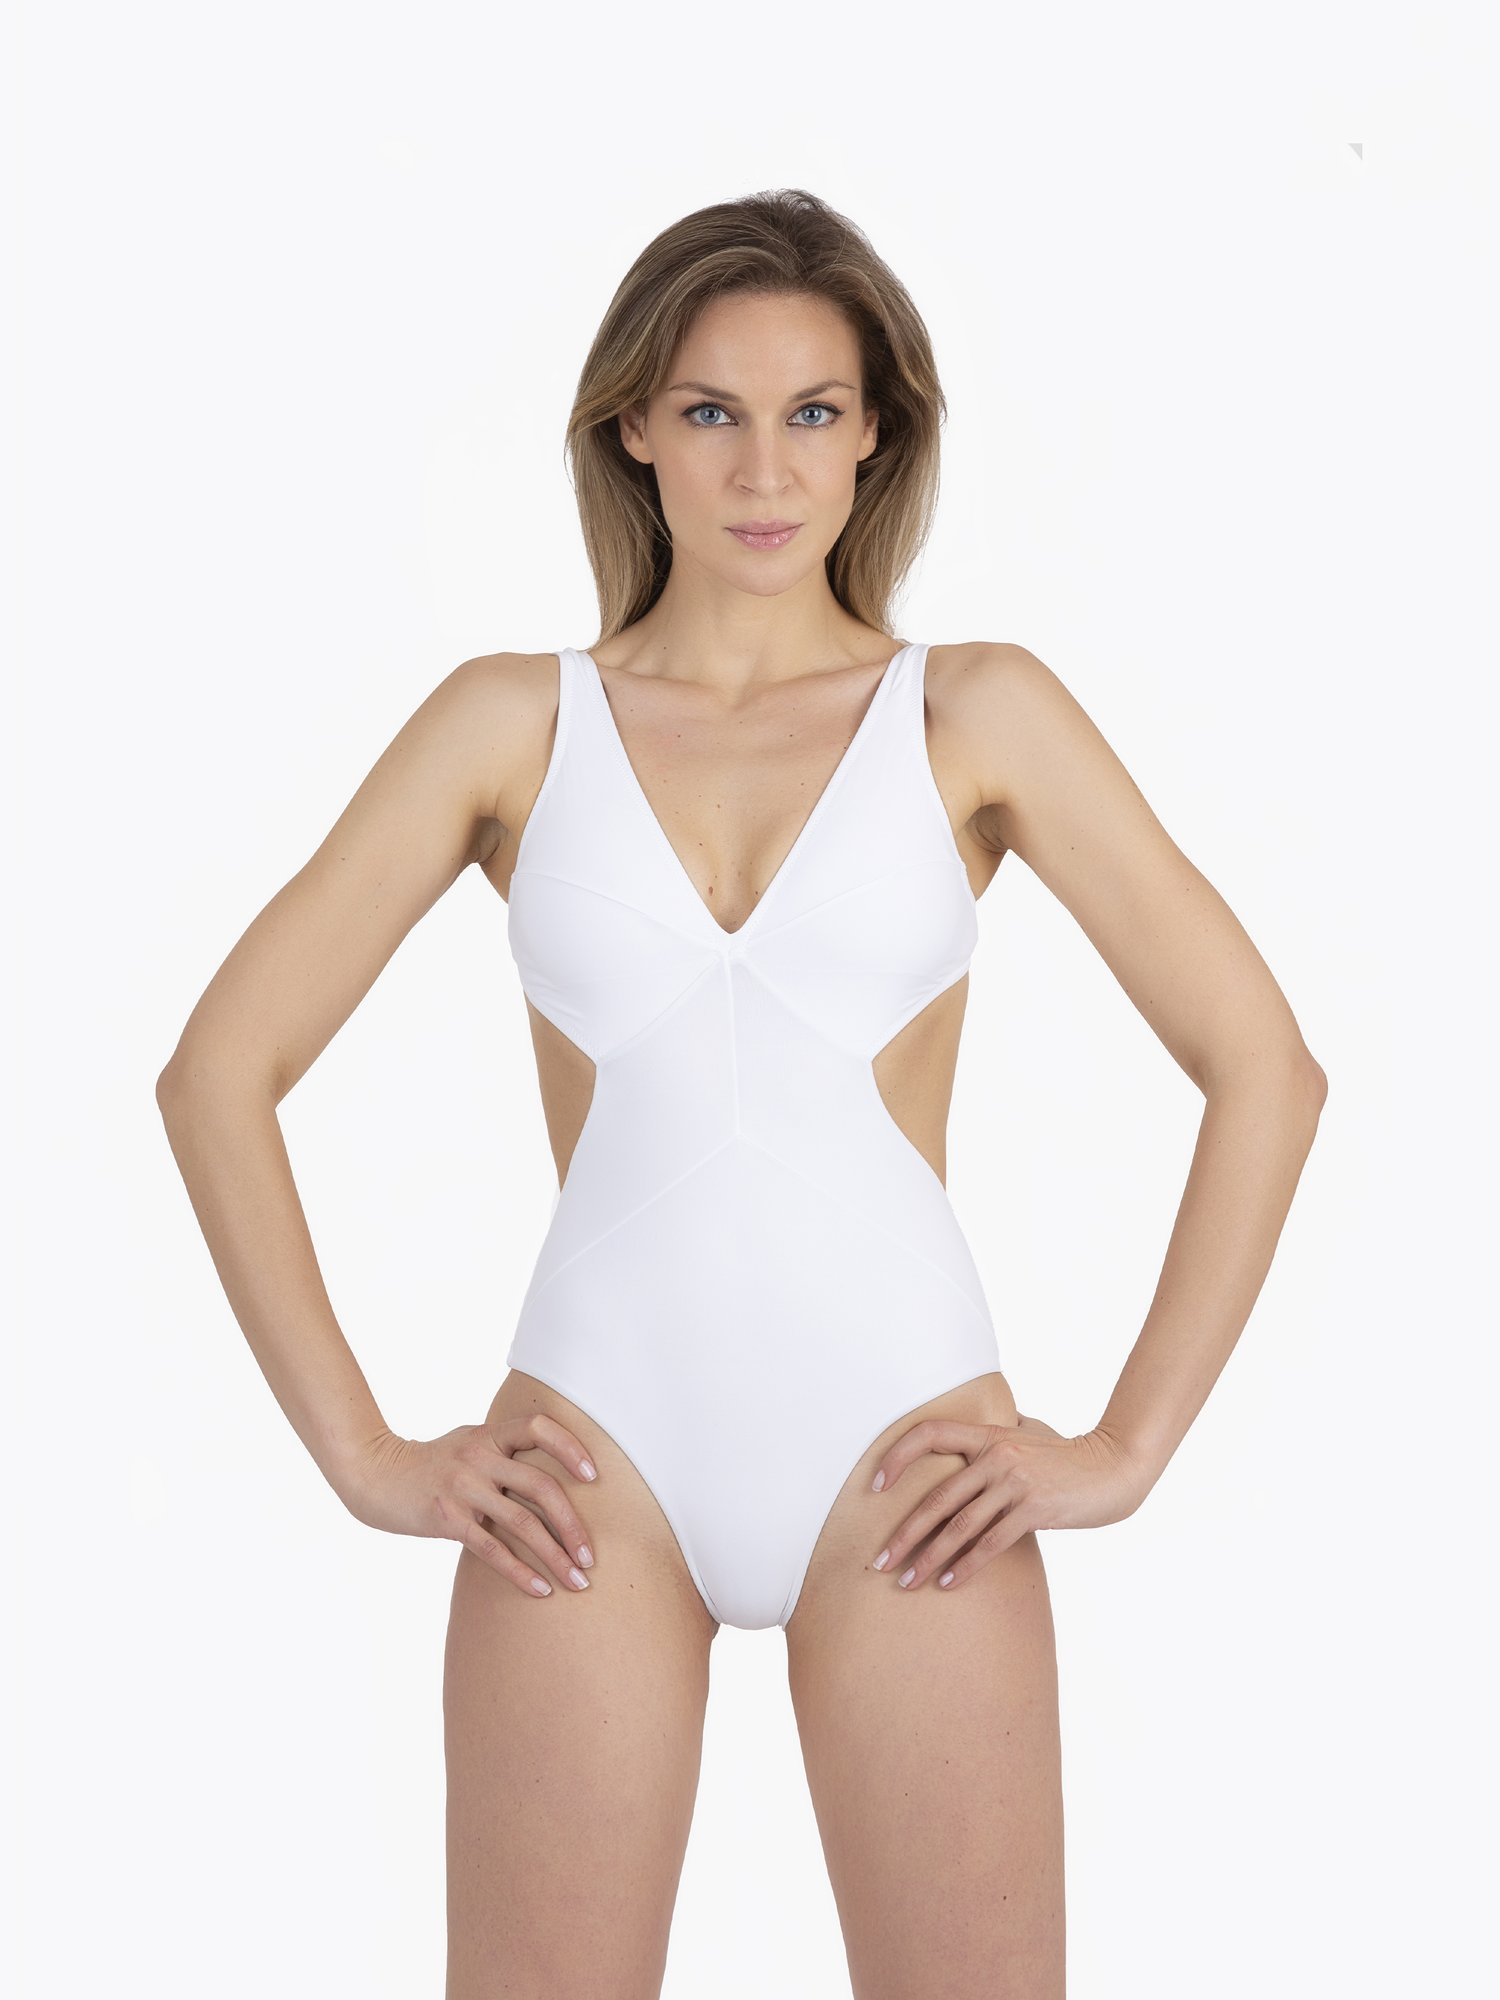 ONE PIECE SWIMSUIT BUTTERFLY MODEL - Bianco White 001